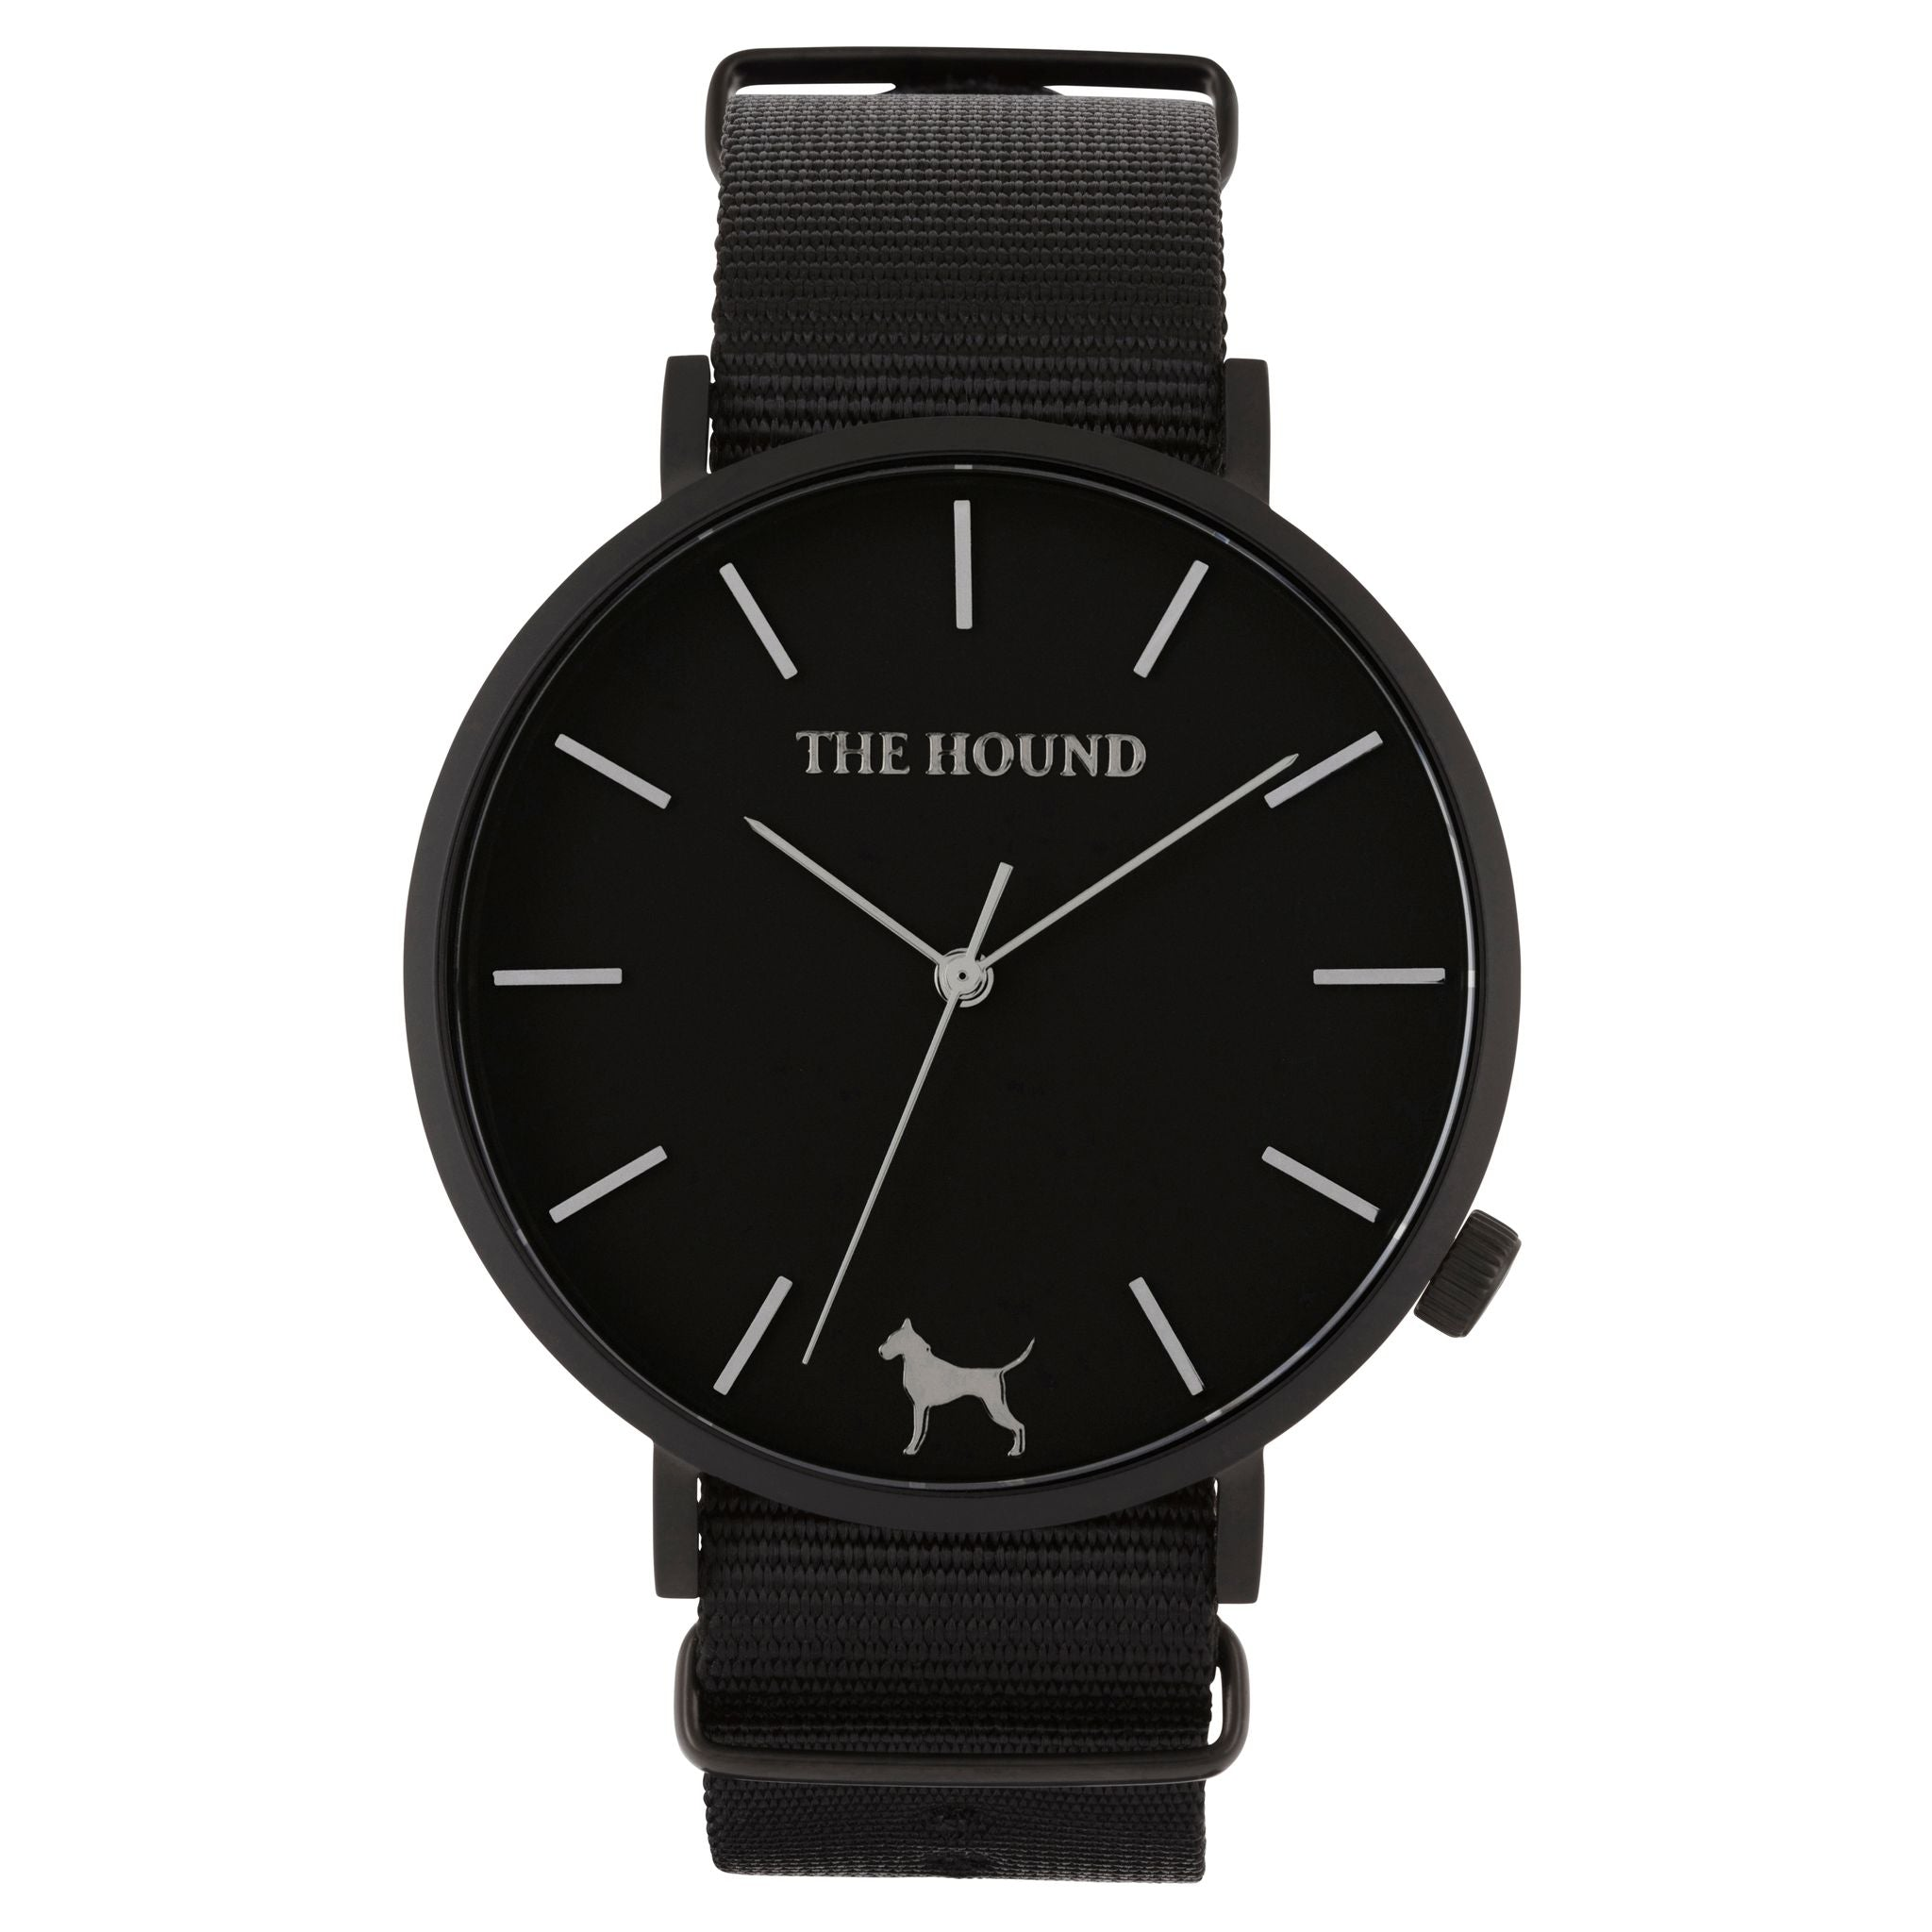 Matte black & black face watch with black nato